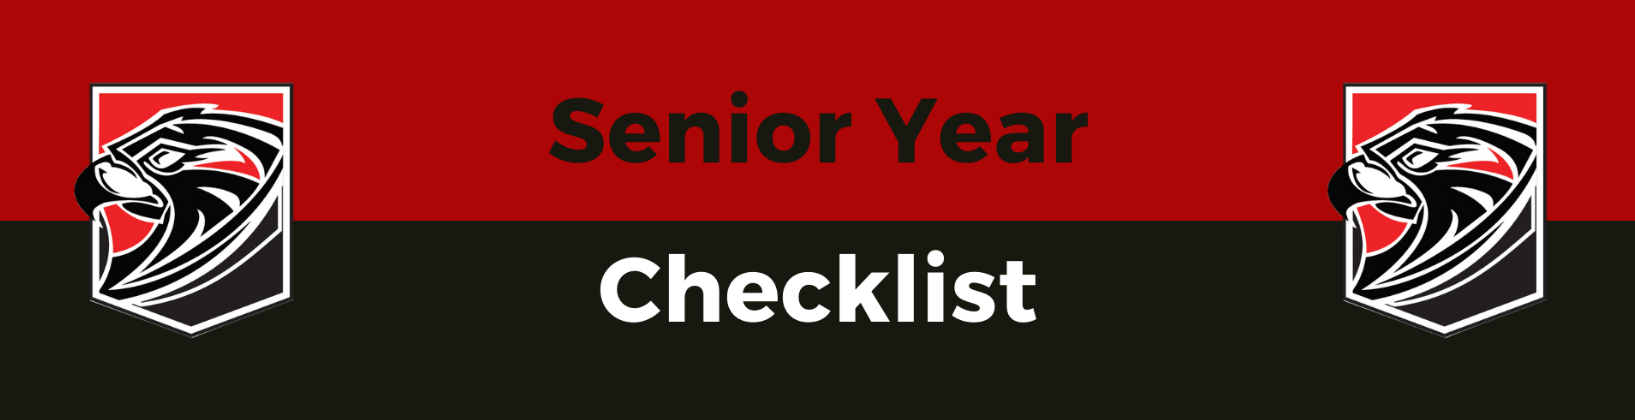 Senior Year Checklist